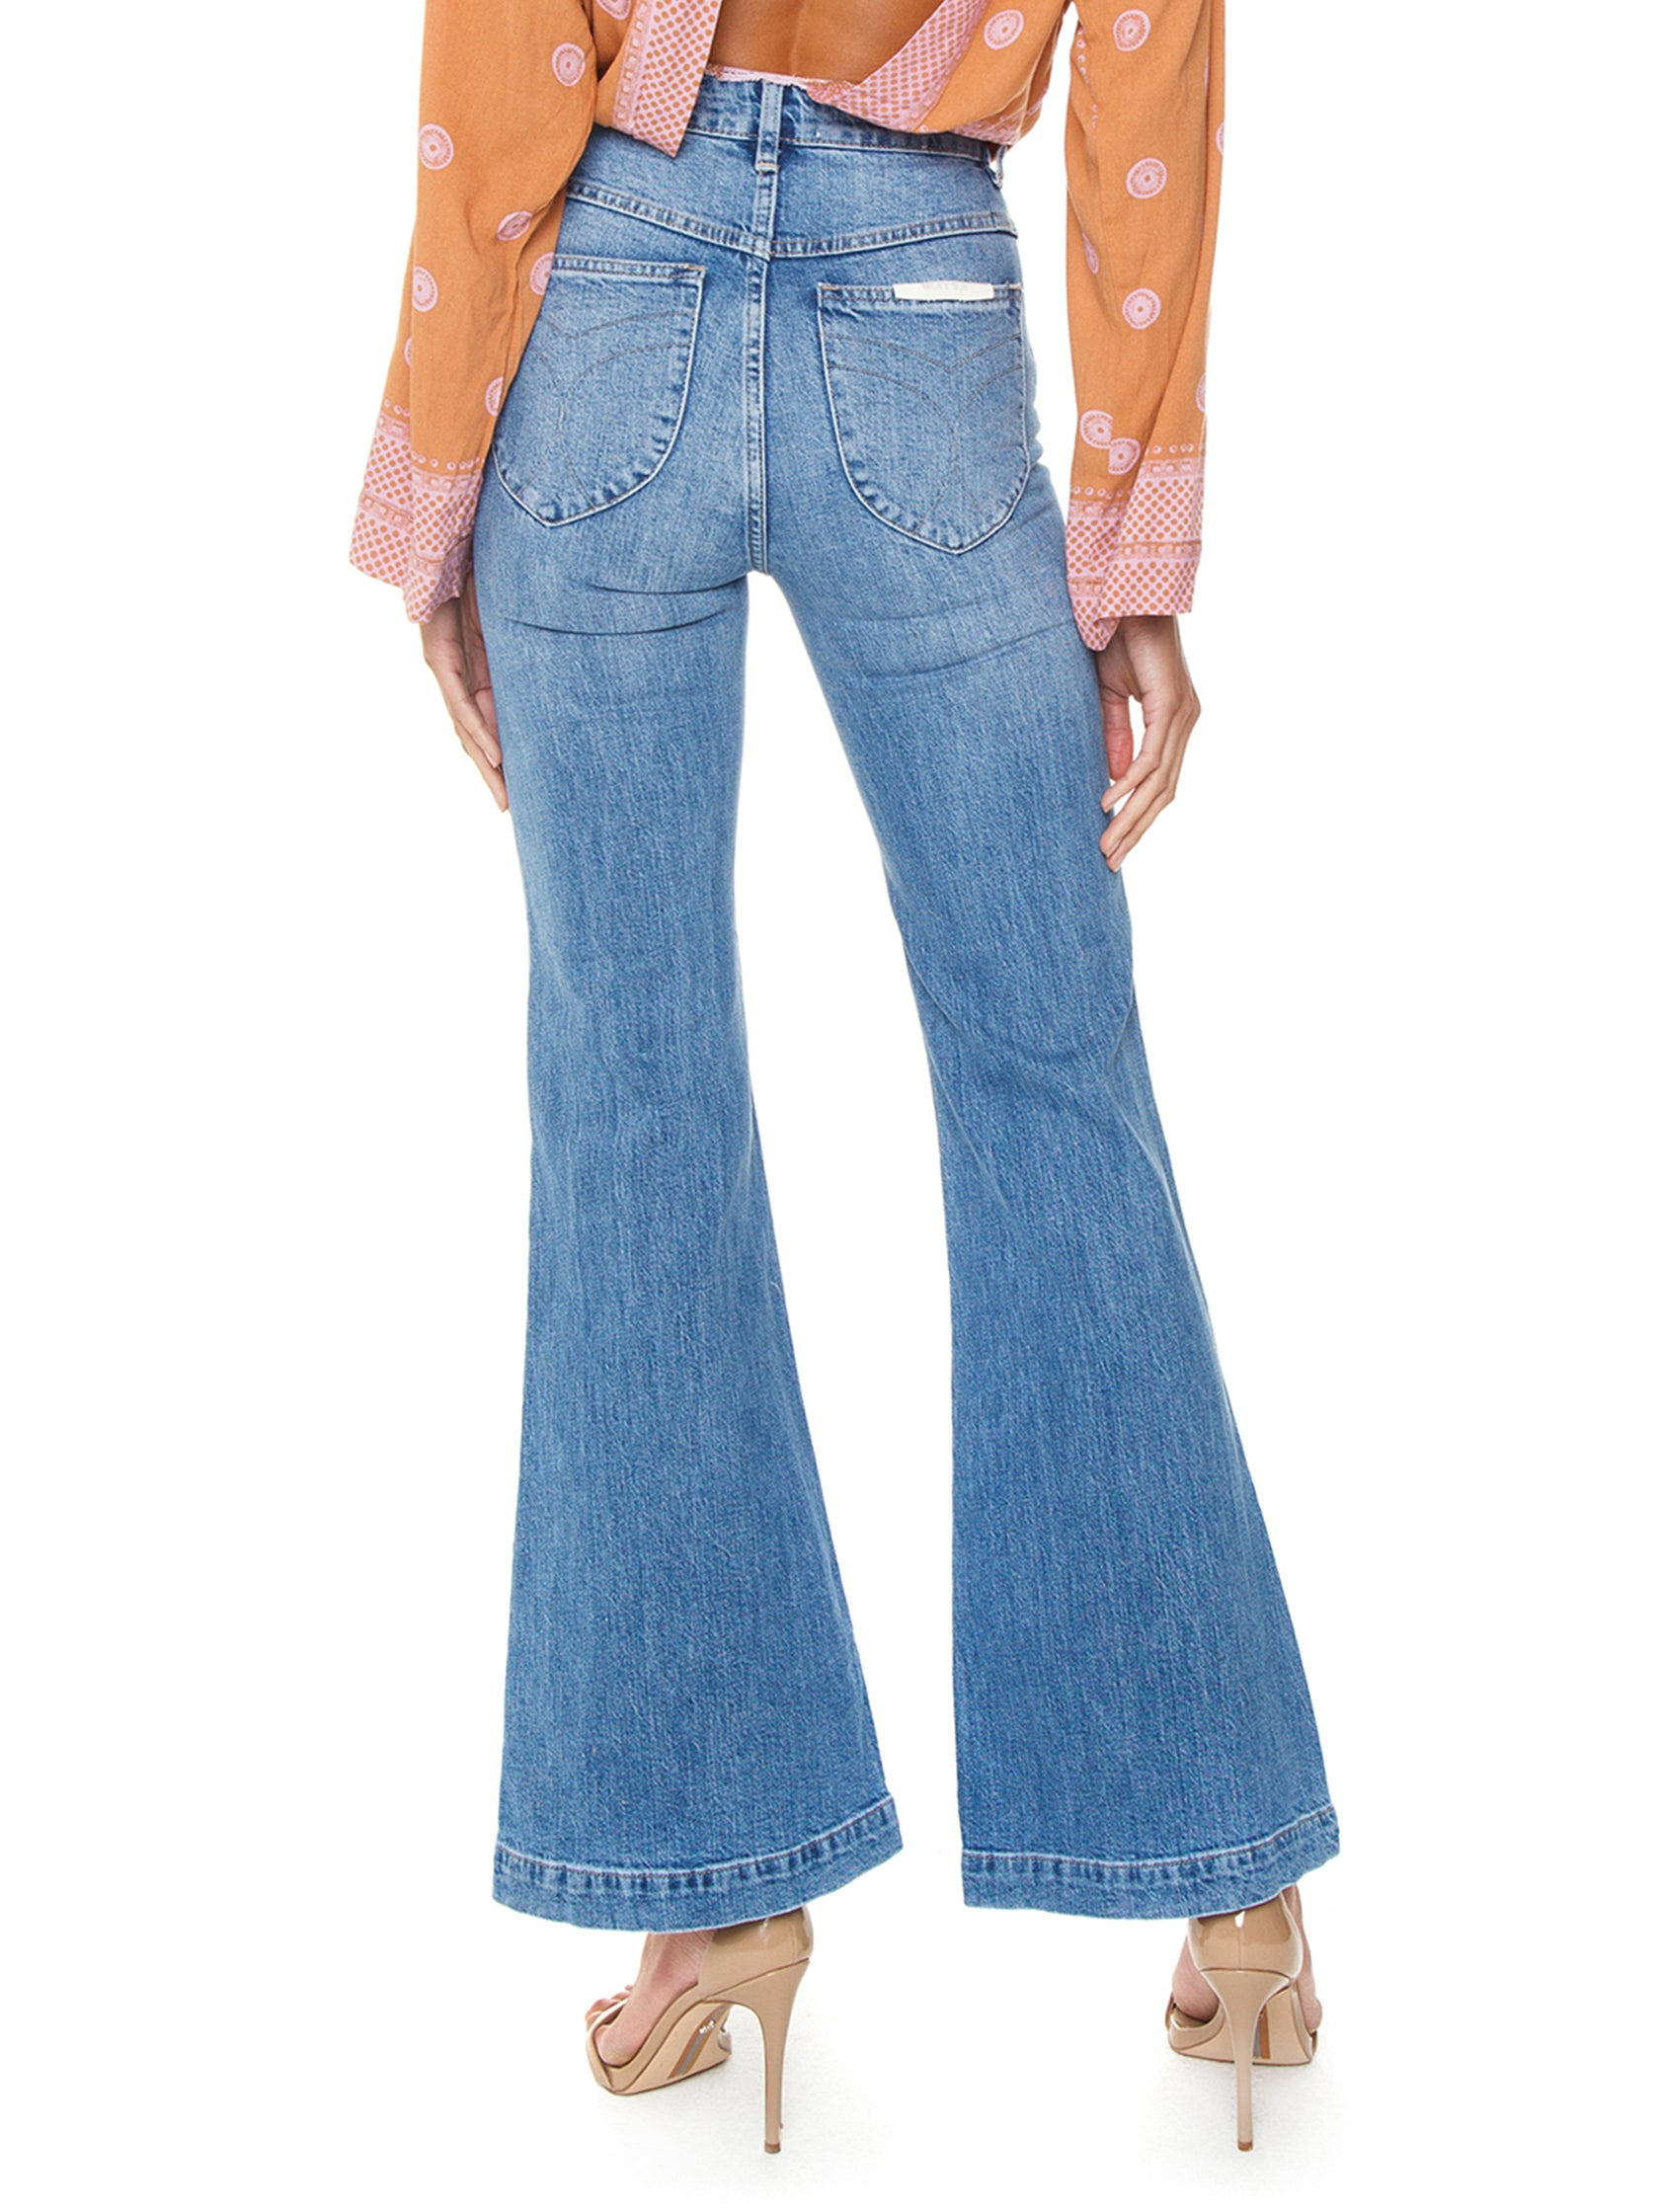 Women outfit in a denim rental from ROLLAS called Eastcoast Flare